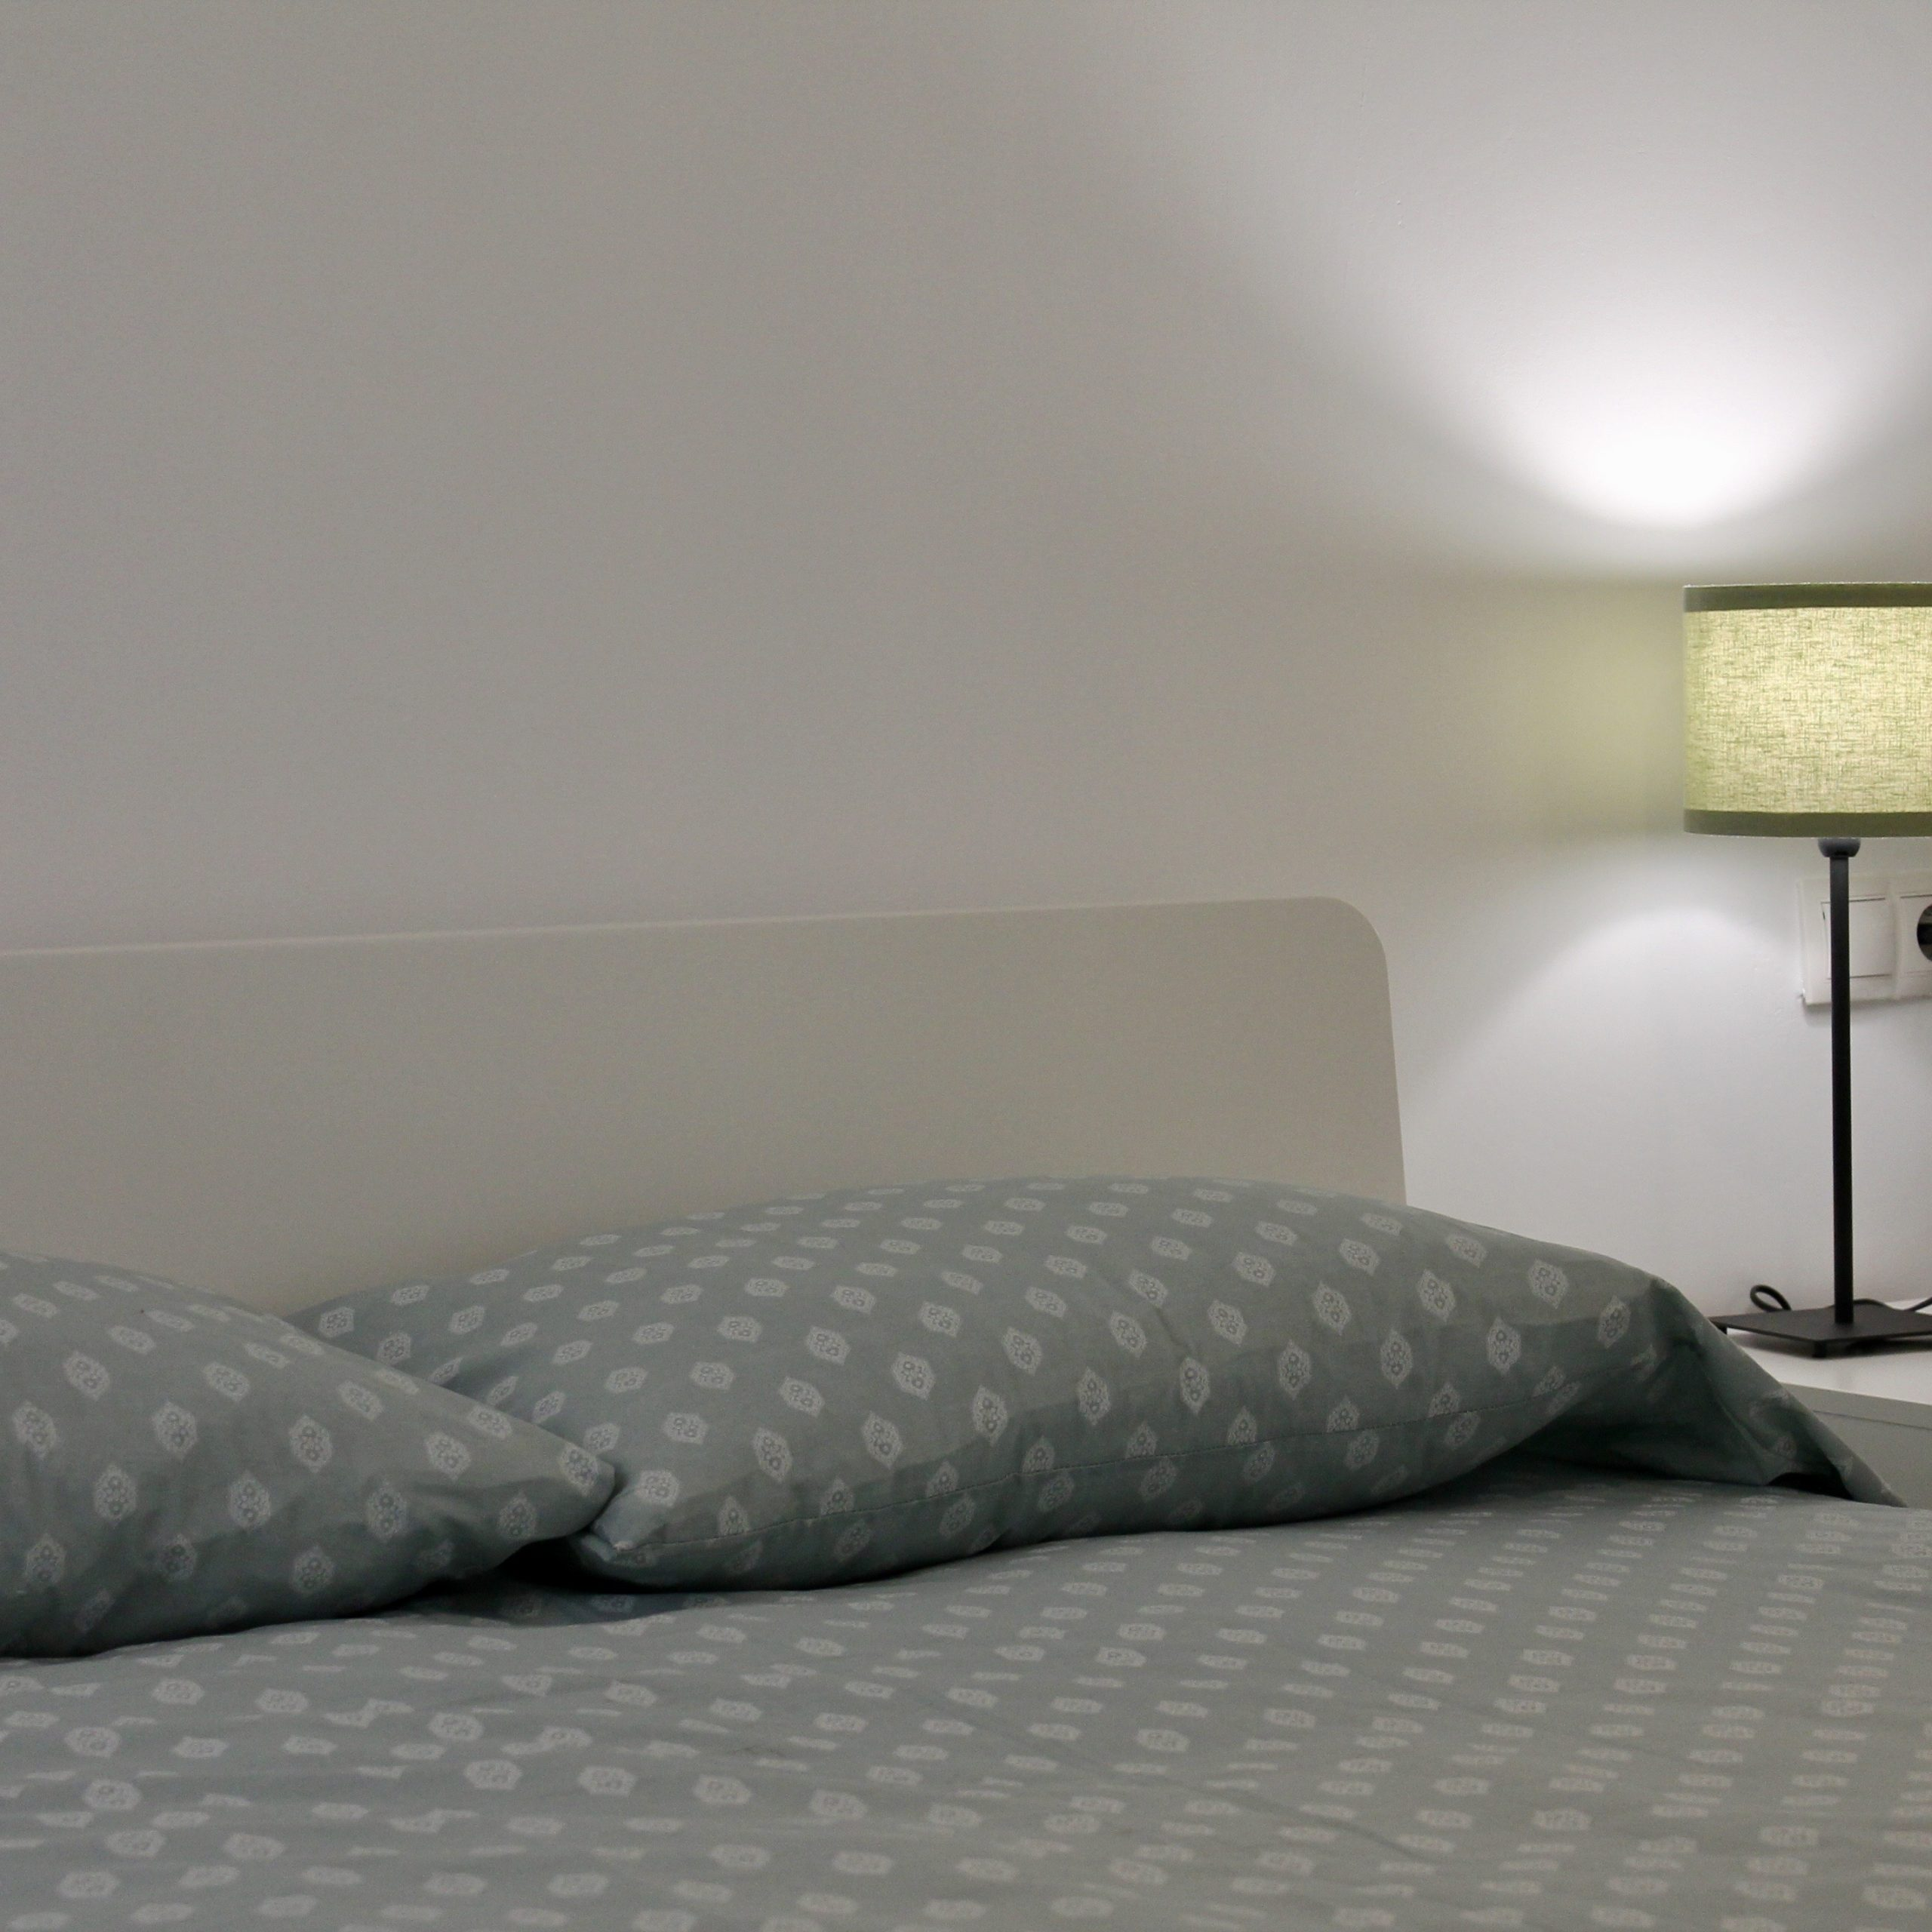 Osona - 2 bedroom apartment in Valencia for expats